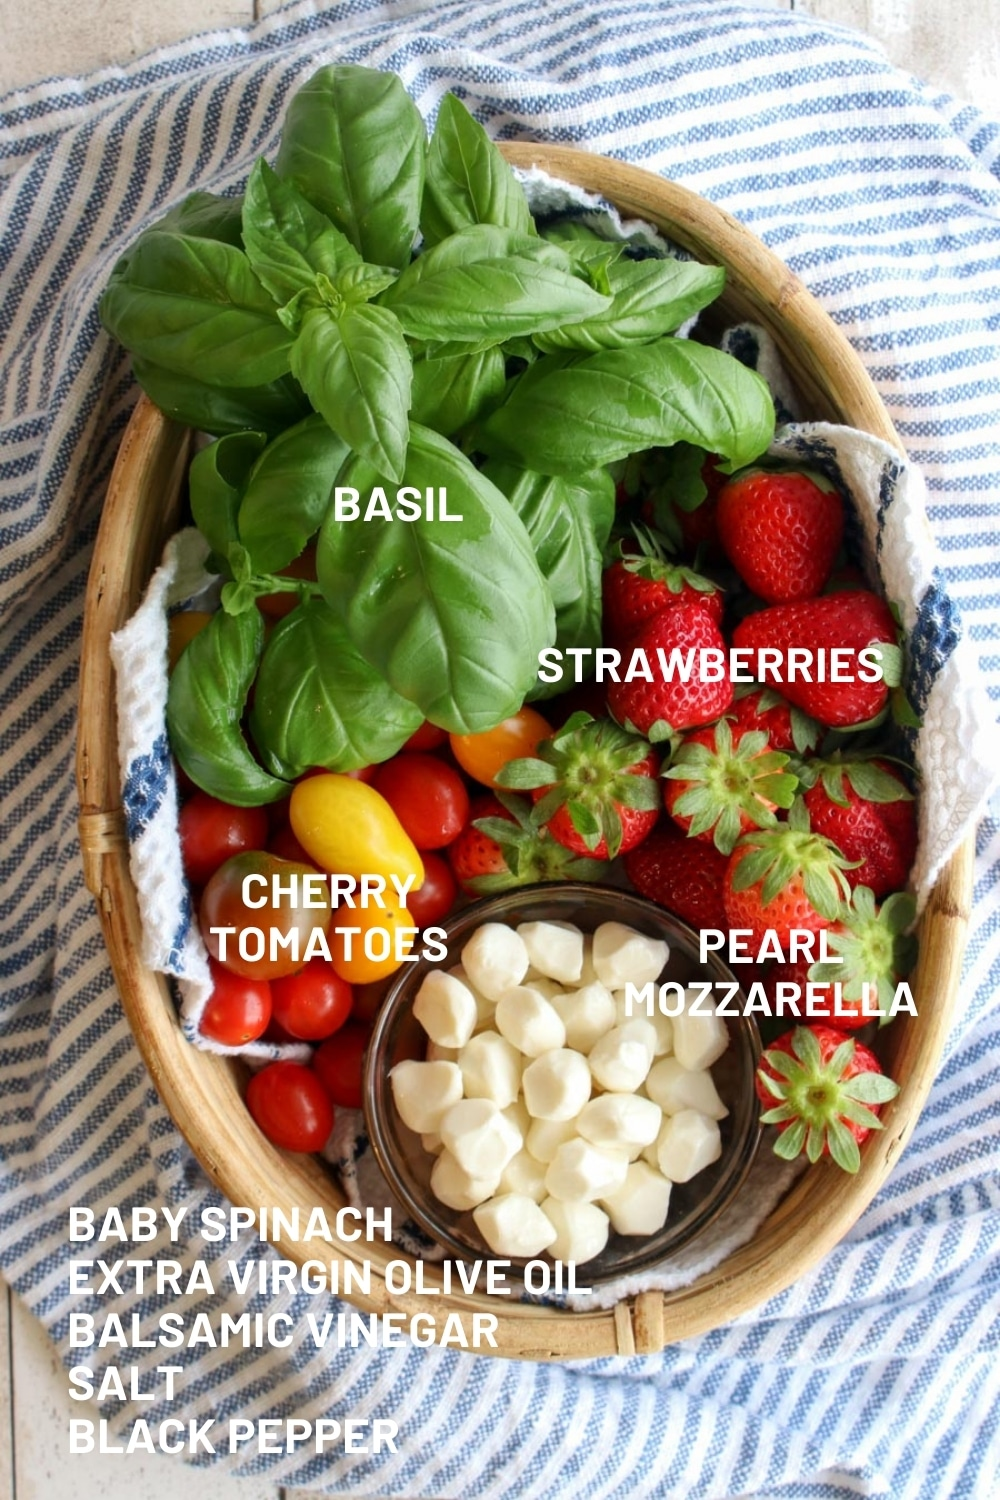 BASKET WITH THE INGREDIENTS TO MAKE STRAWBERRY CAPRESE SALAD